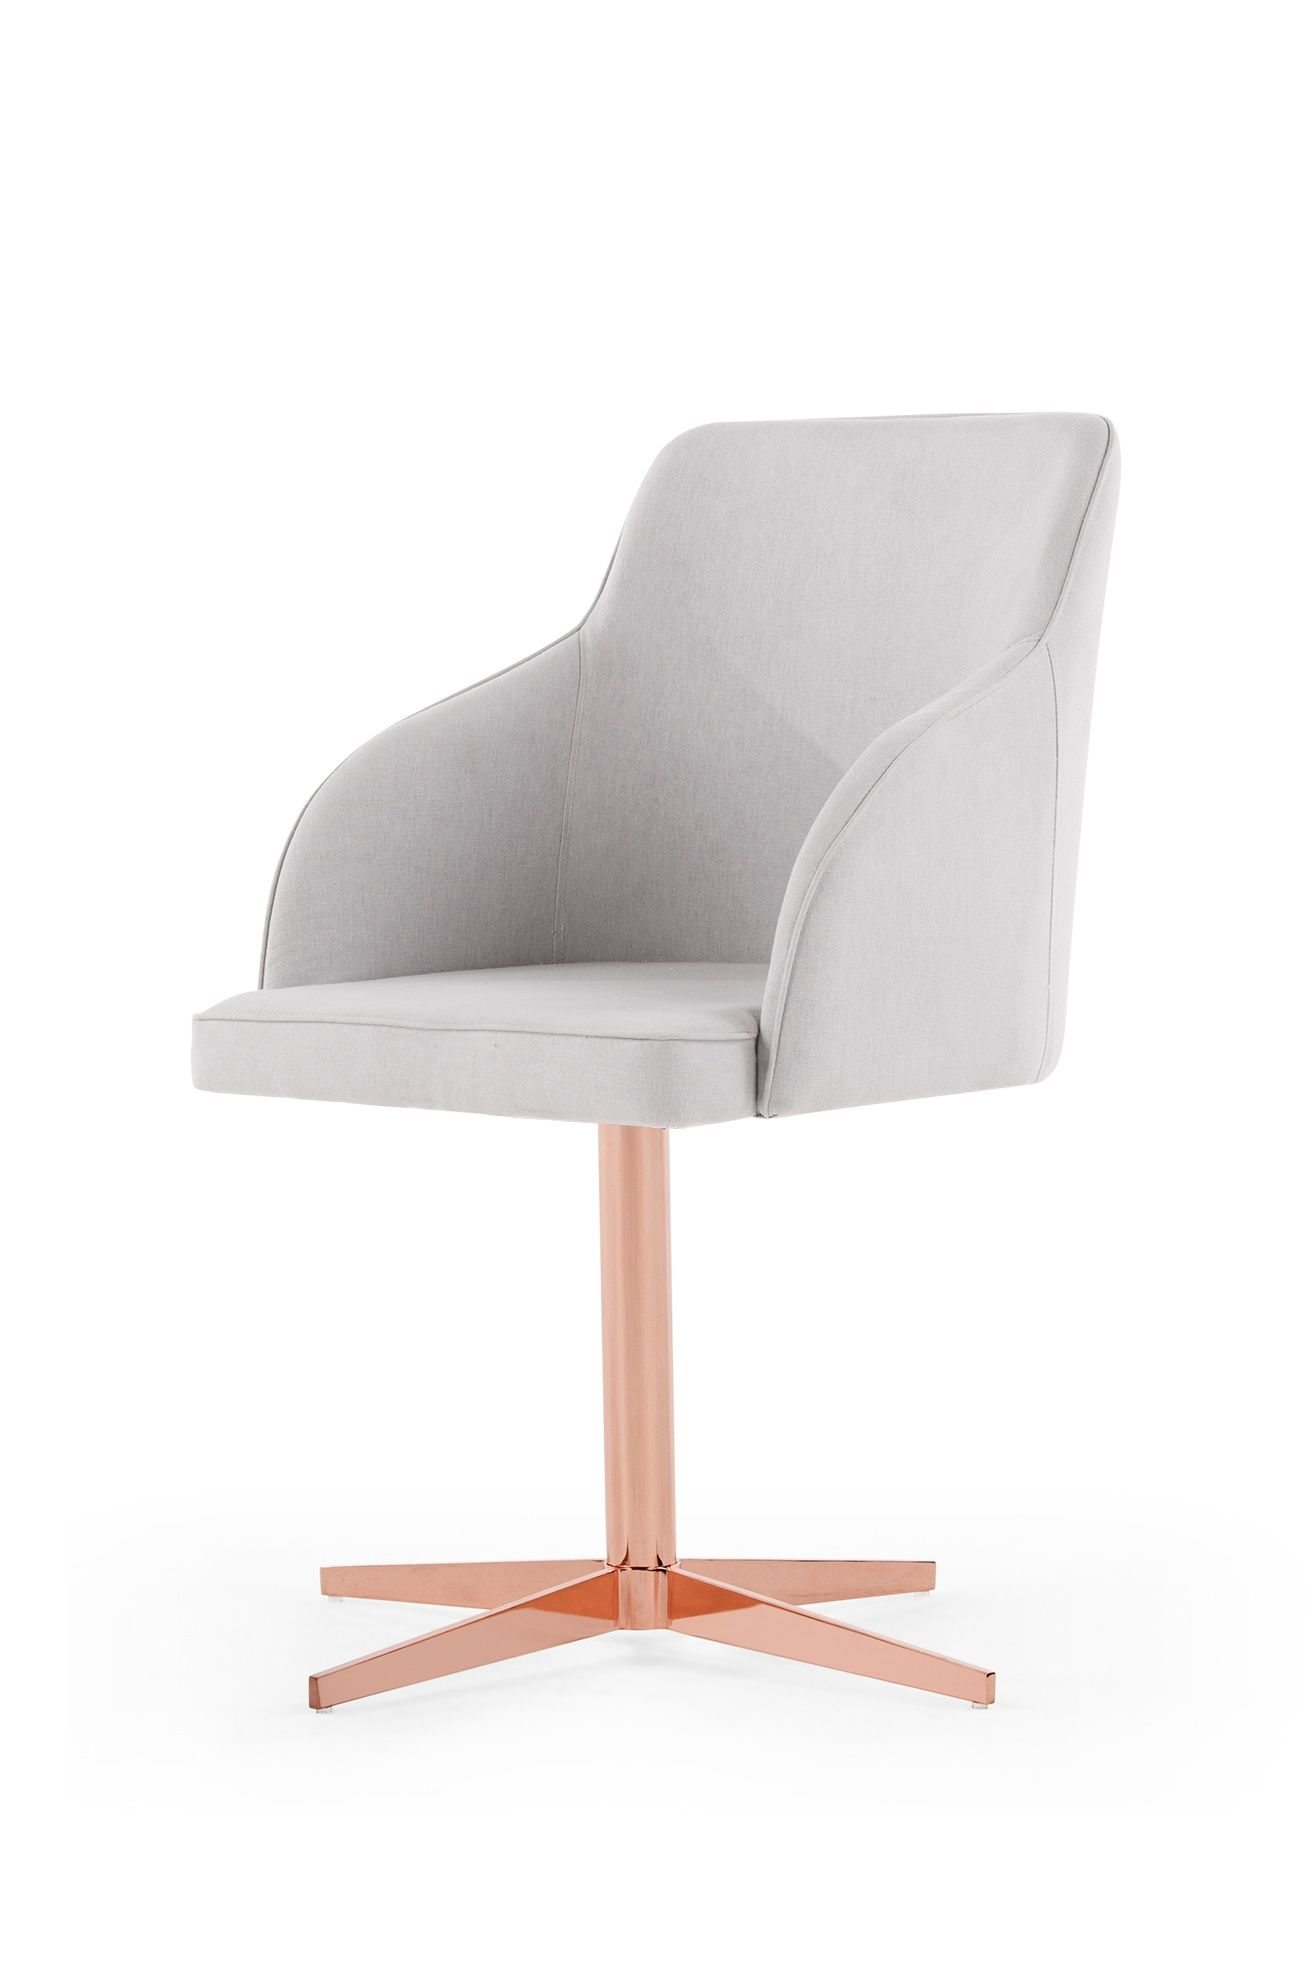 stylish home office chairs. The Keira Office Chair, In Gloud Grey And Copper. Have Most Stylish Home Around. A Collaboration Between MADE Livingetc. £149. MADE.COM Chairs Pinterest